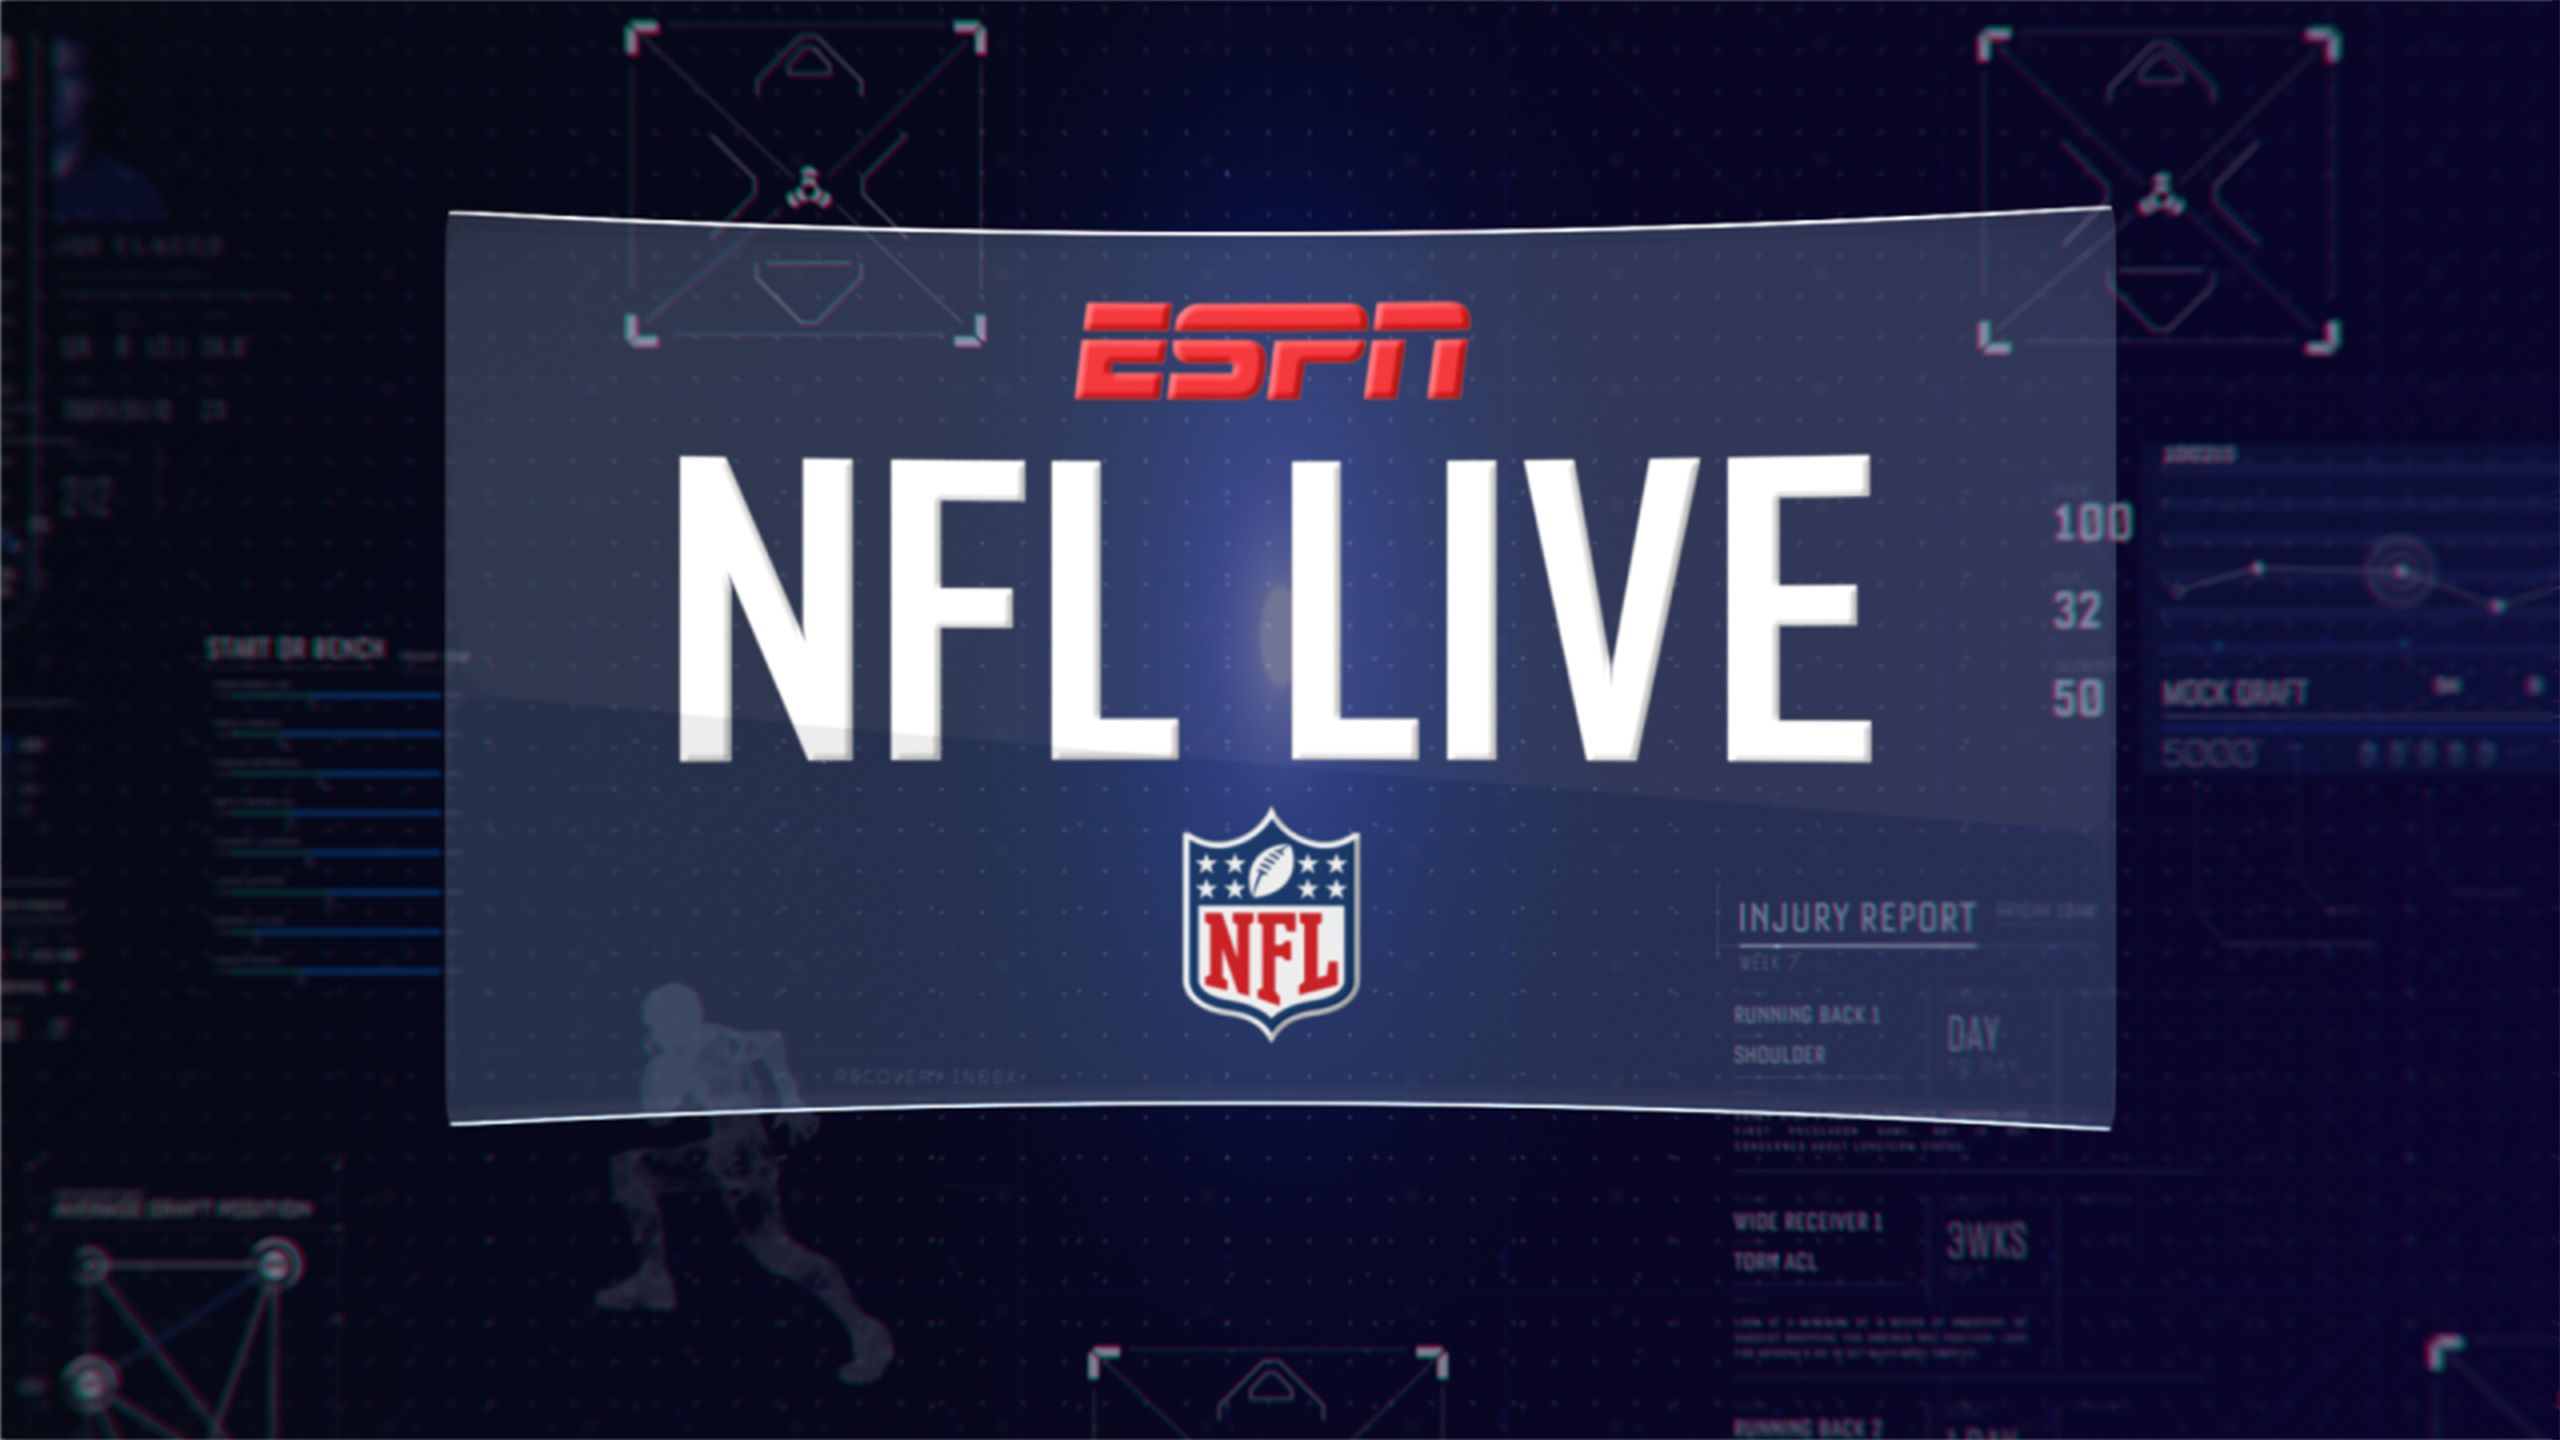 NFL Live as Part of The ESPN Fantasy Football Marathon